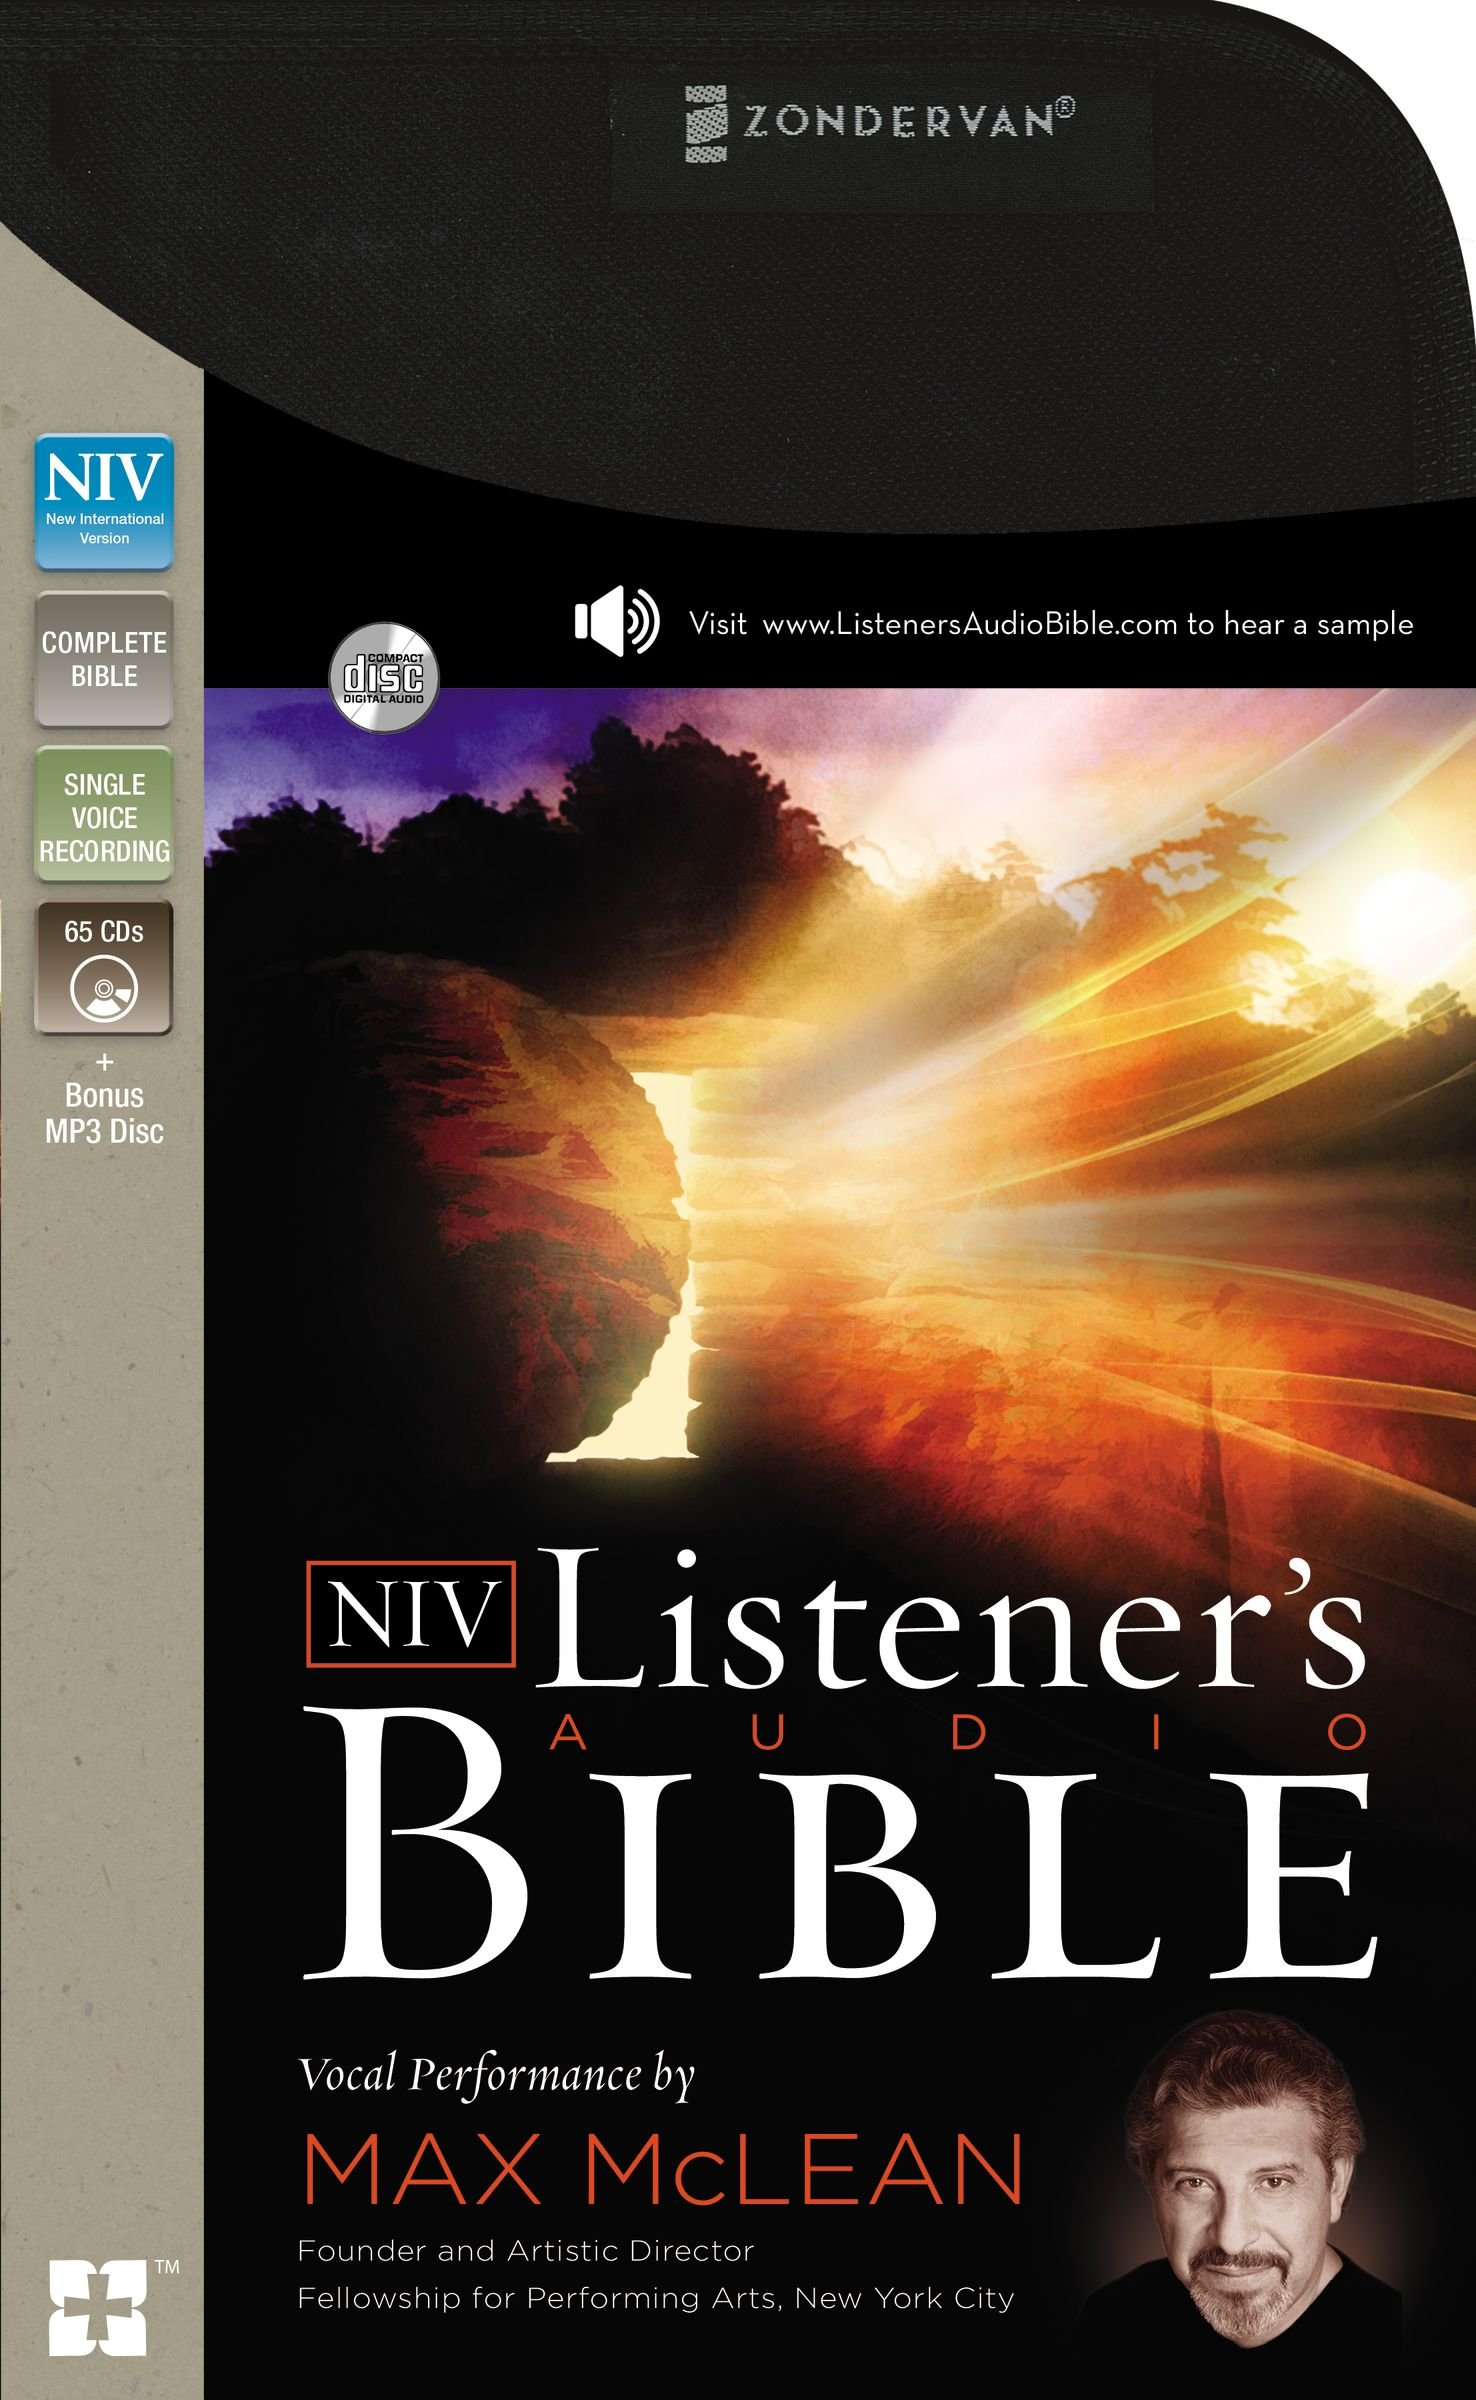 NIV, Listener's Audio Bible, Audio CD: Vocal Performance by Max McLean by HarperCollins Christian Pub. (Image #1)